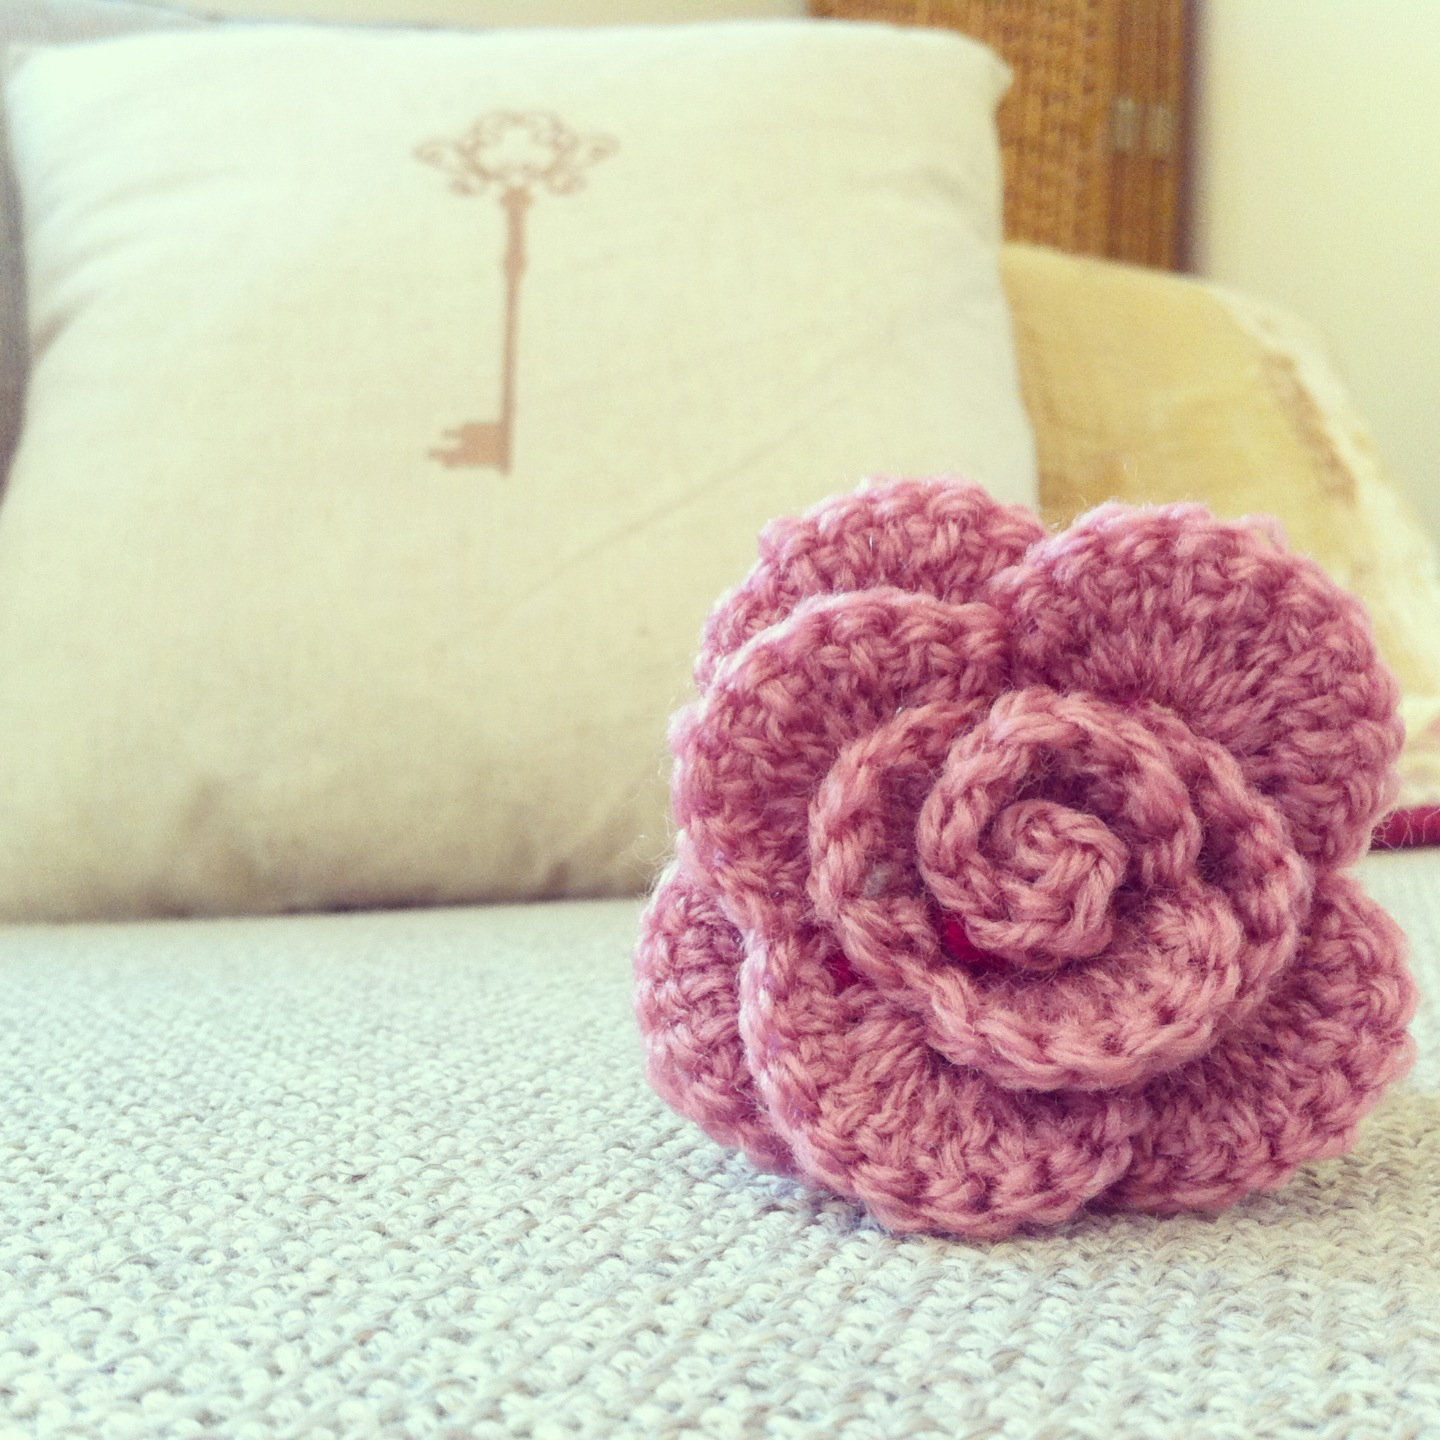 Small Rose Flower Crochet Pattern : Melanie Eman: Crochet Rolled Rose